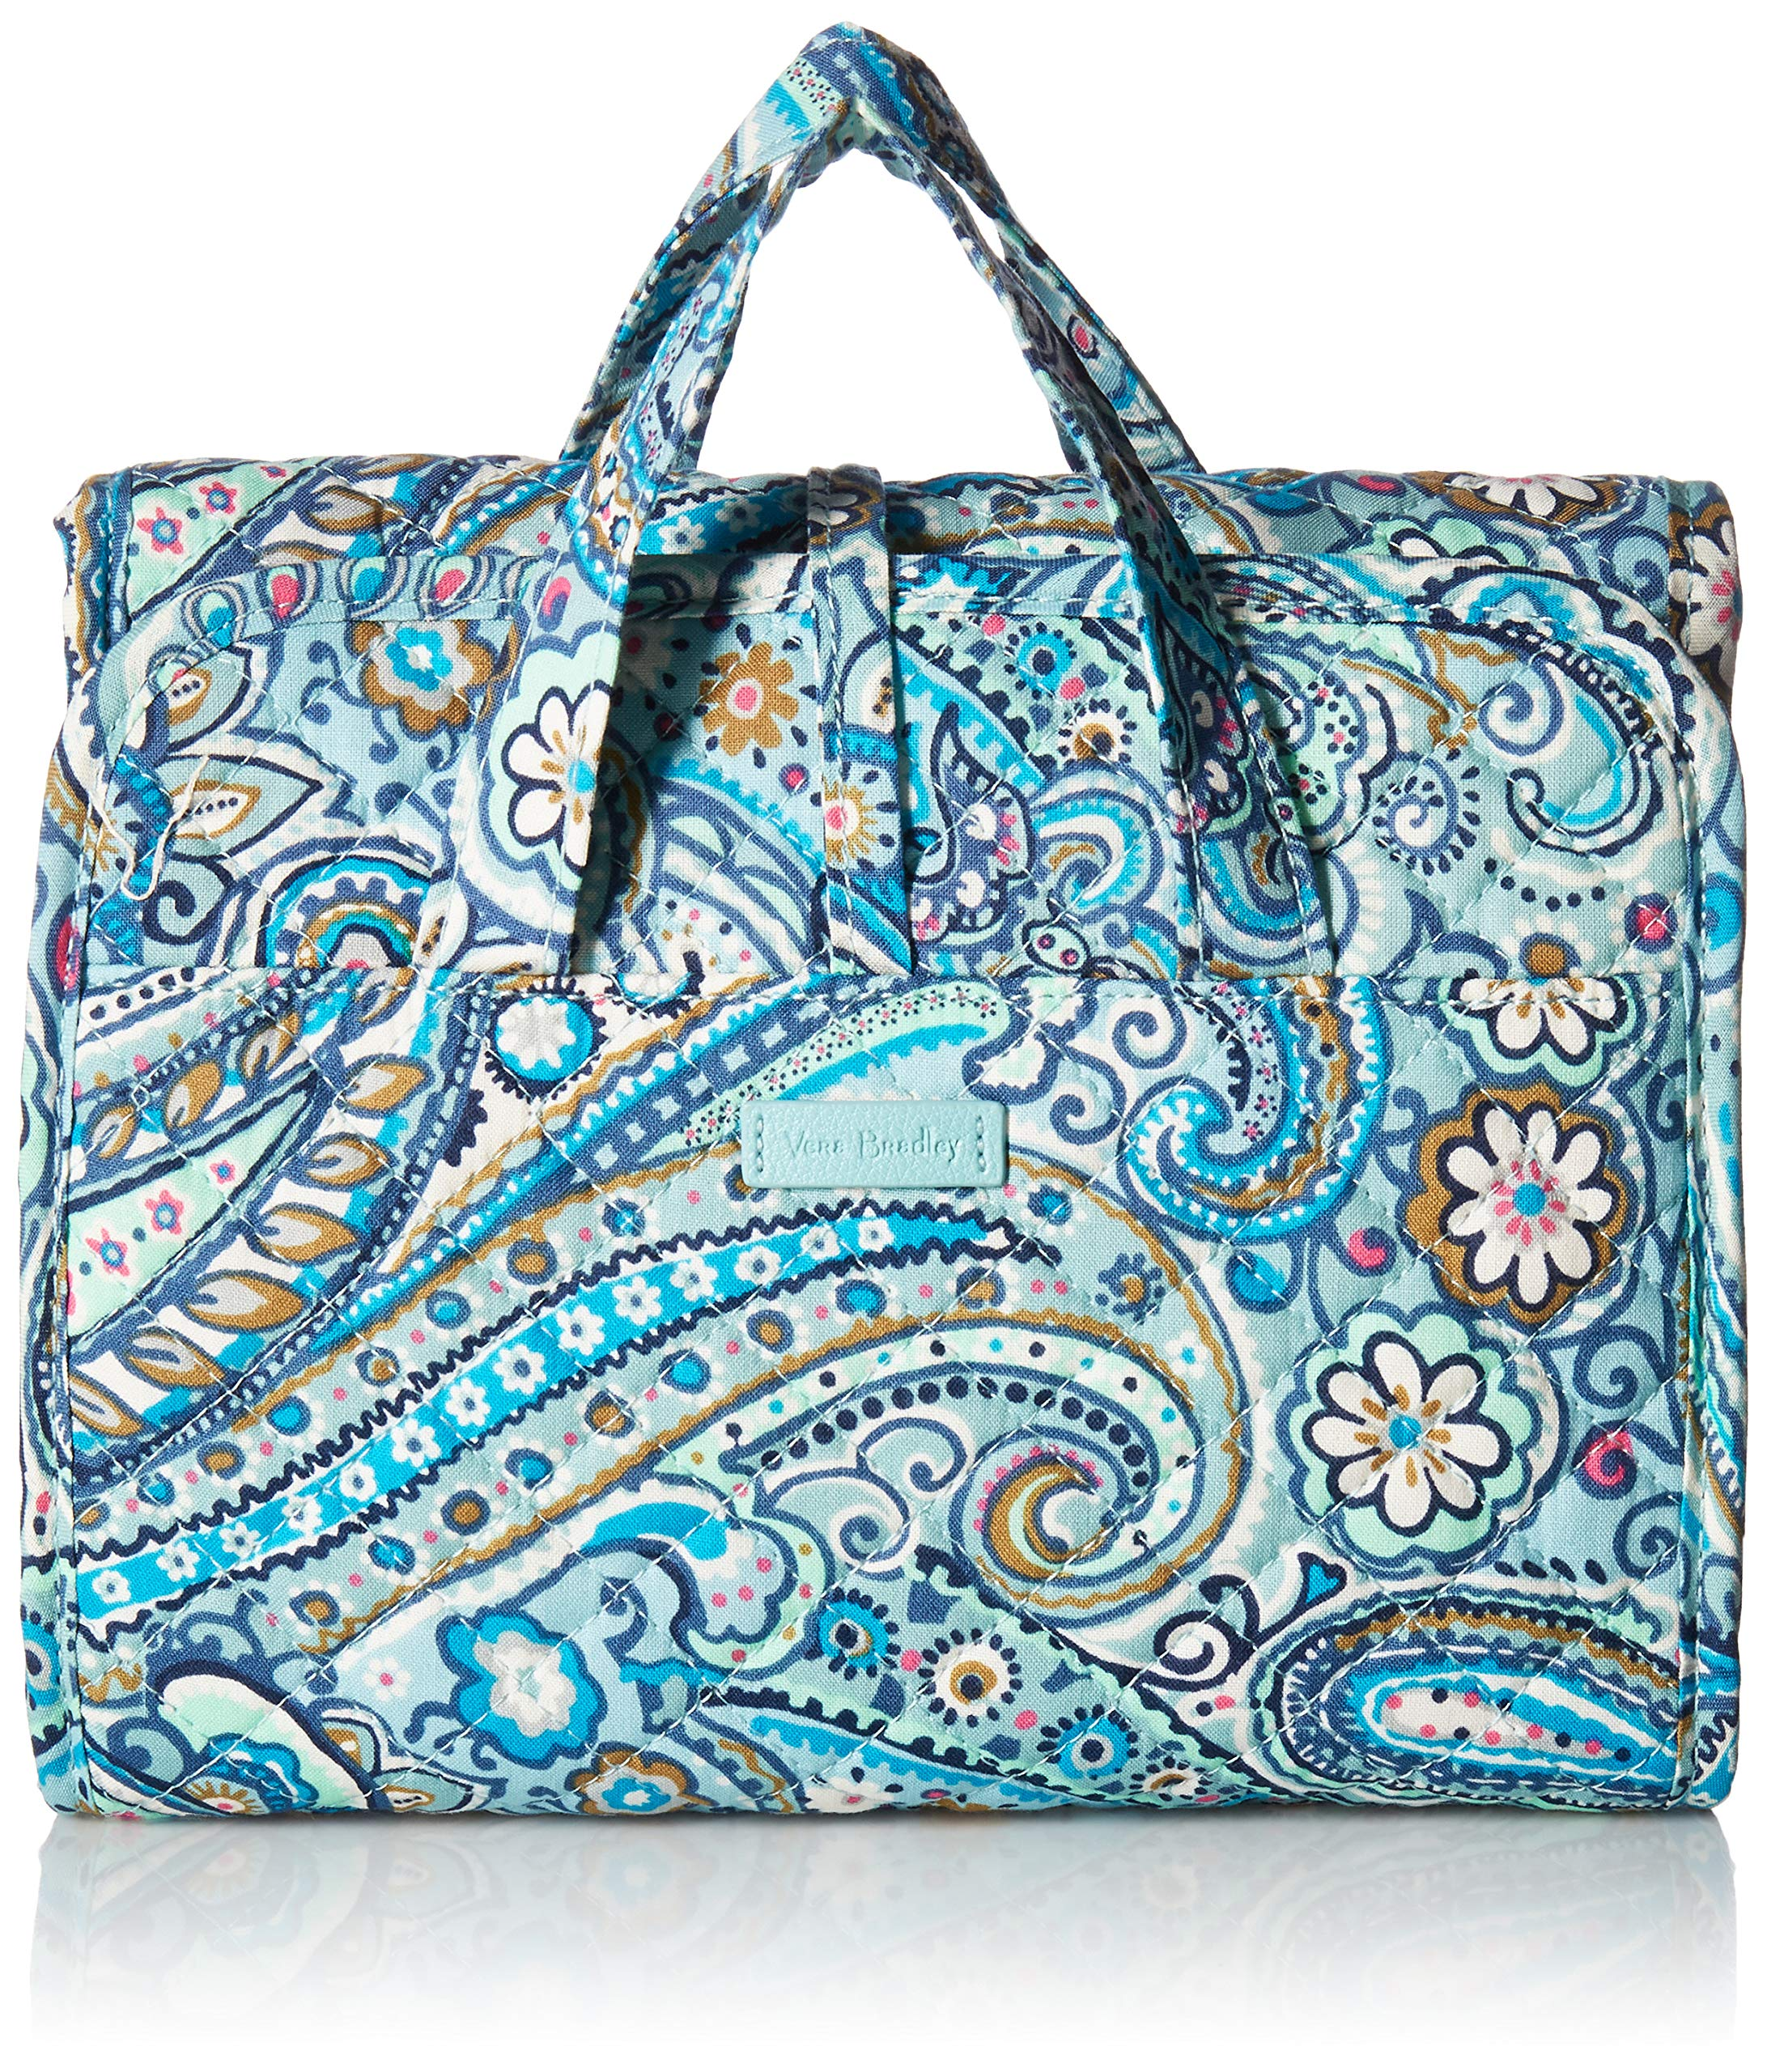 Vera Bradley womens Iconic Compact Hanging Organizer, Other Fabrication, Daisy Dot Paisley, One Size